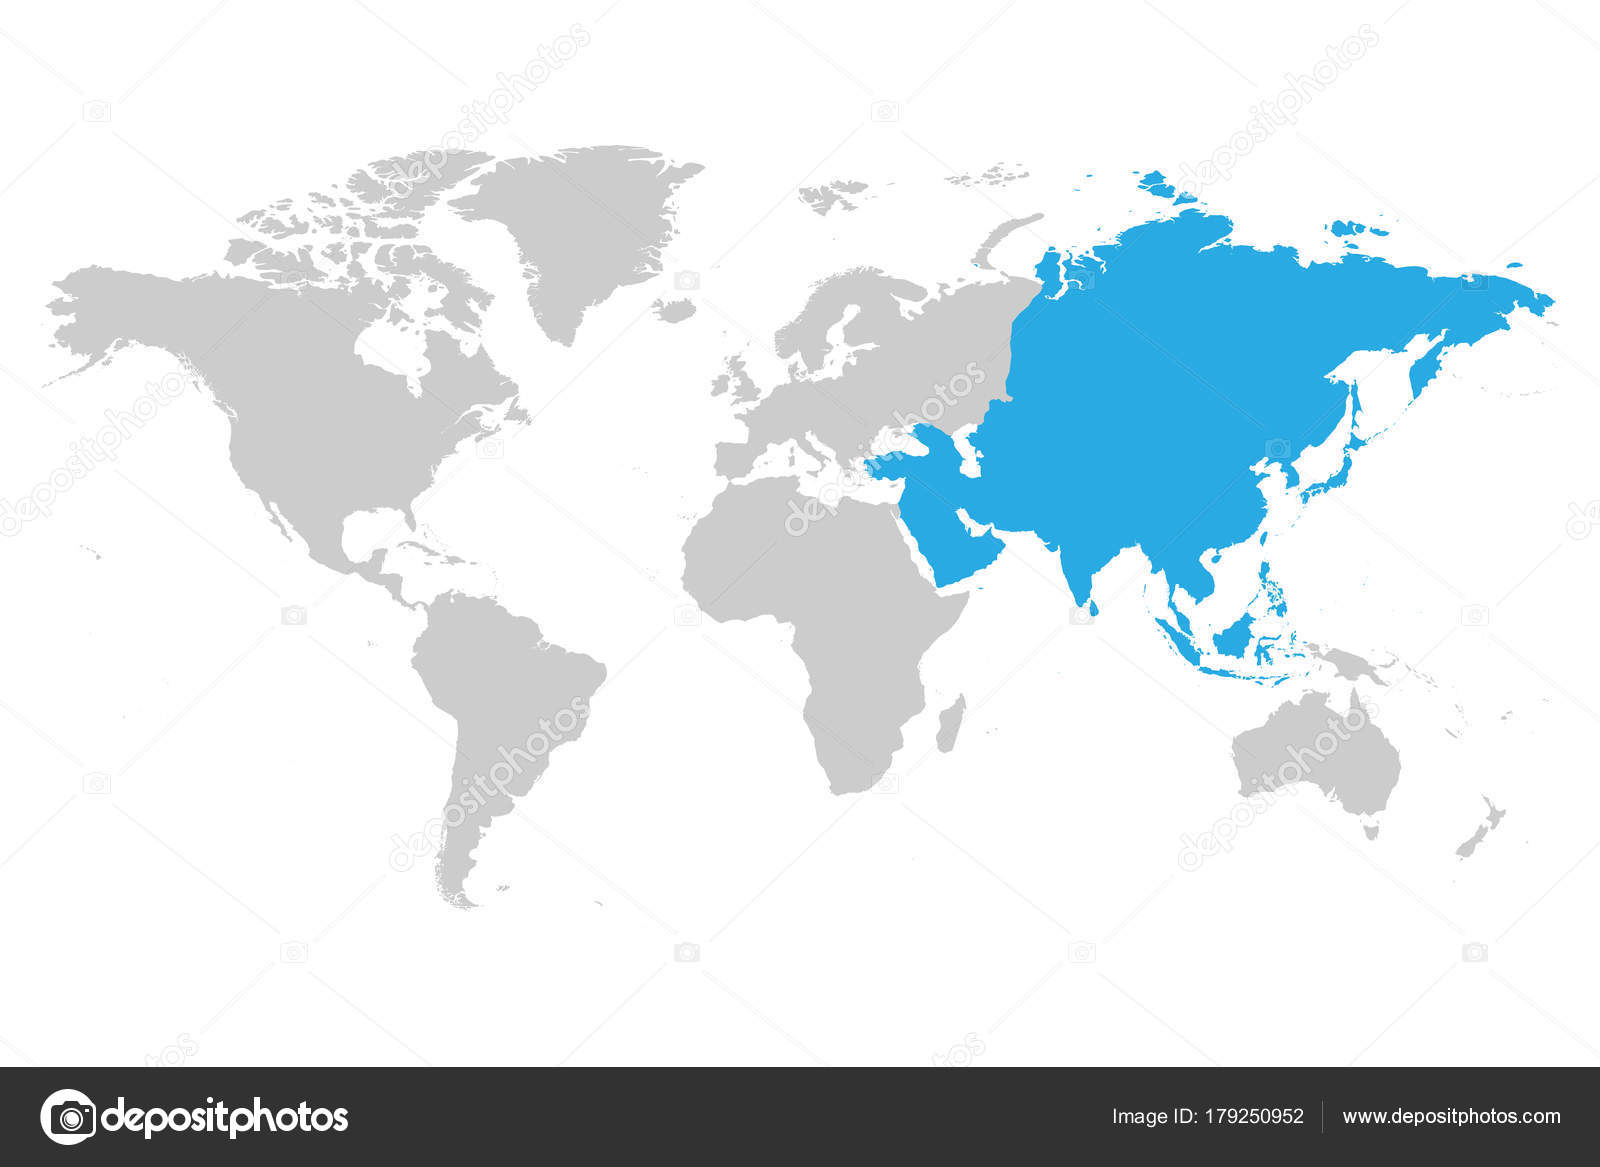 Asia continent blue marked in grey silhouette of world map simple asia continent blue marked in grey silhouette of world map simple flat vector illustration gumiabroncs Image collections